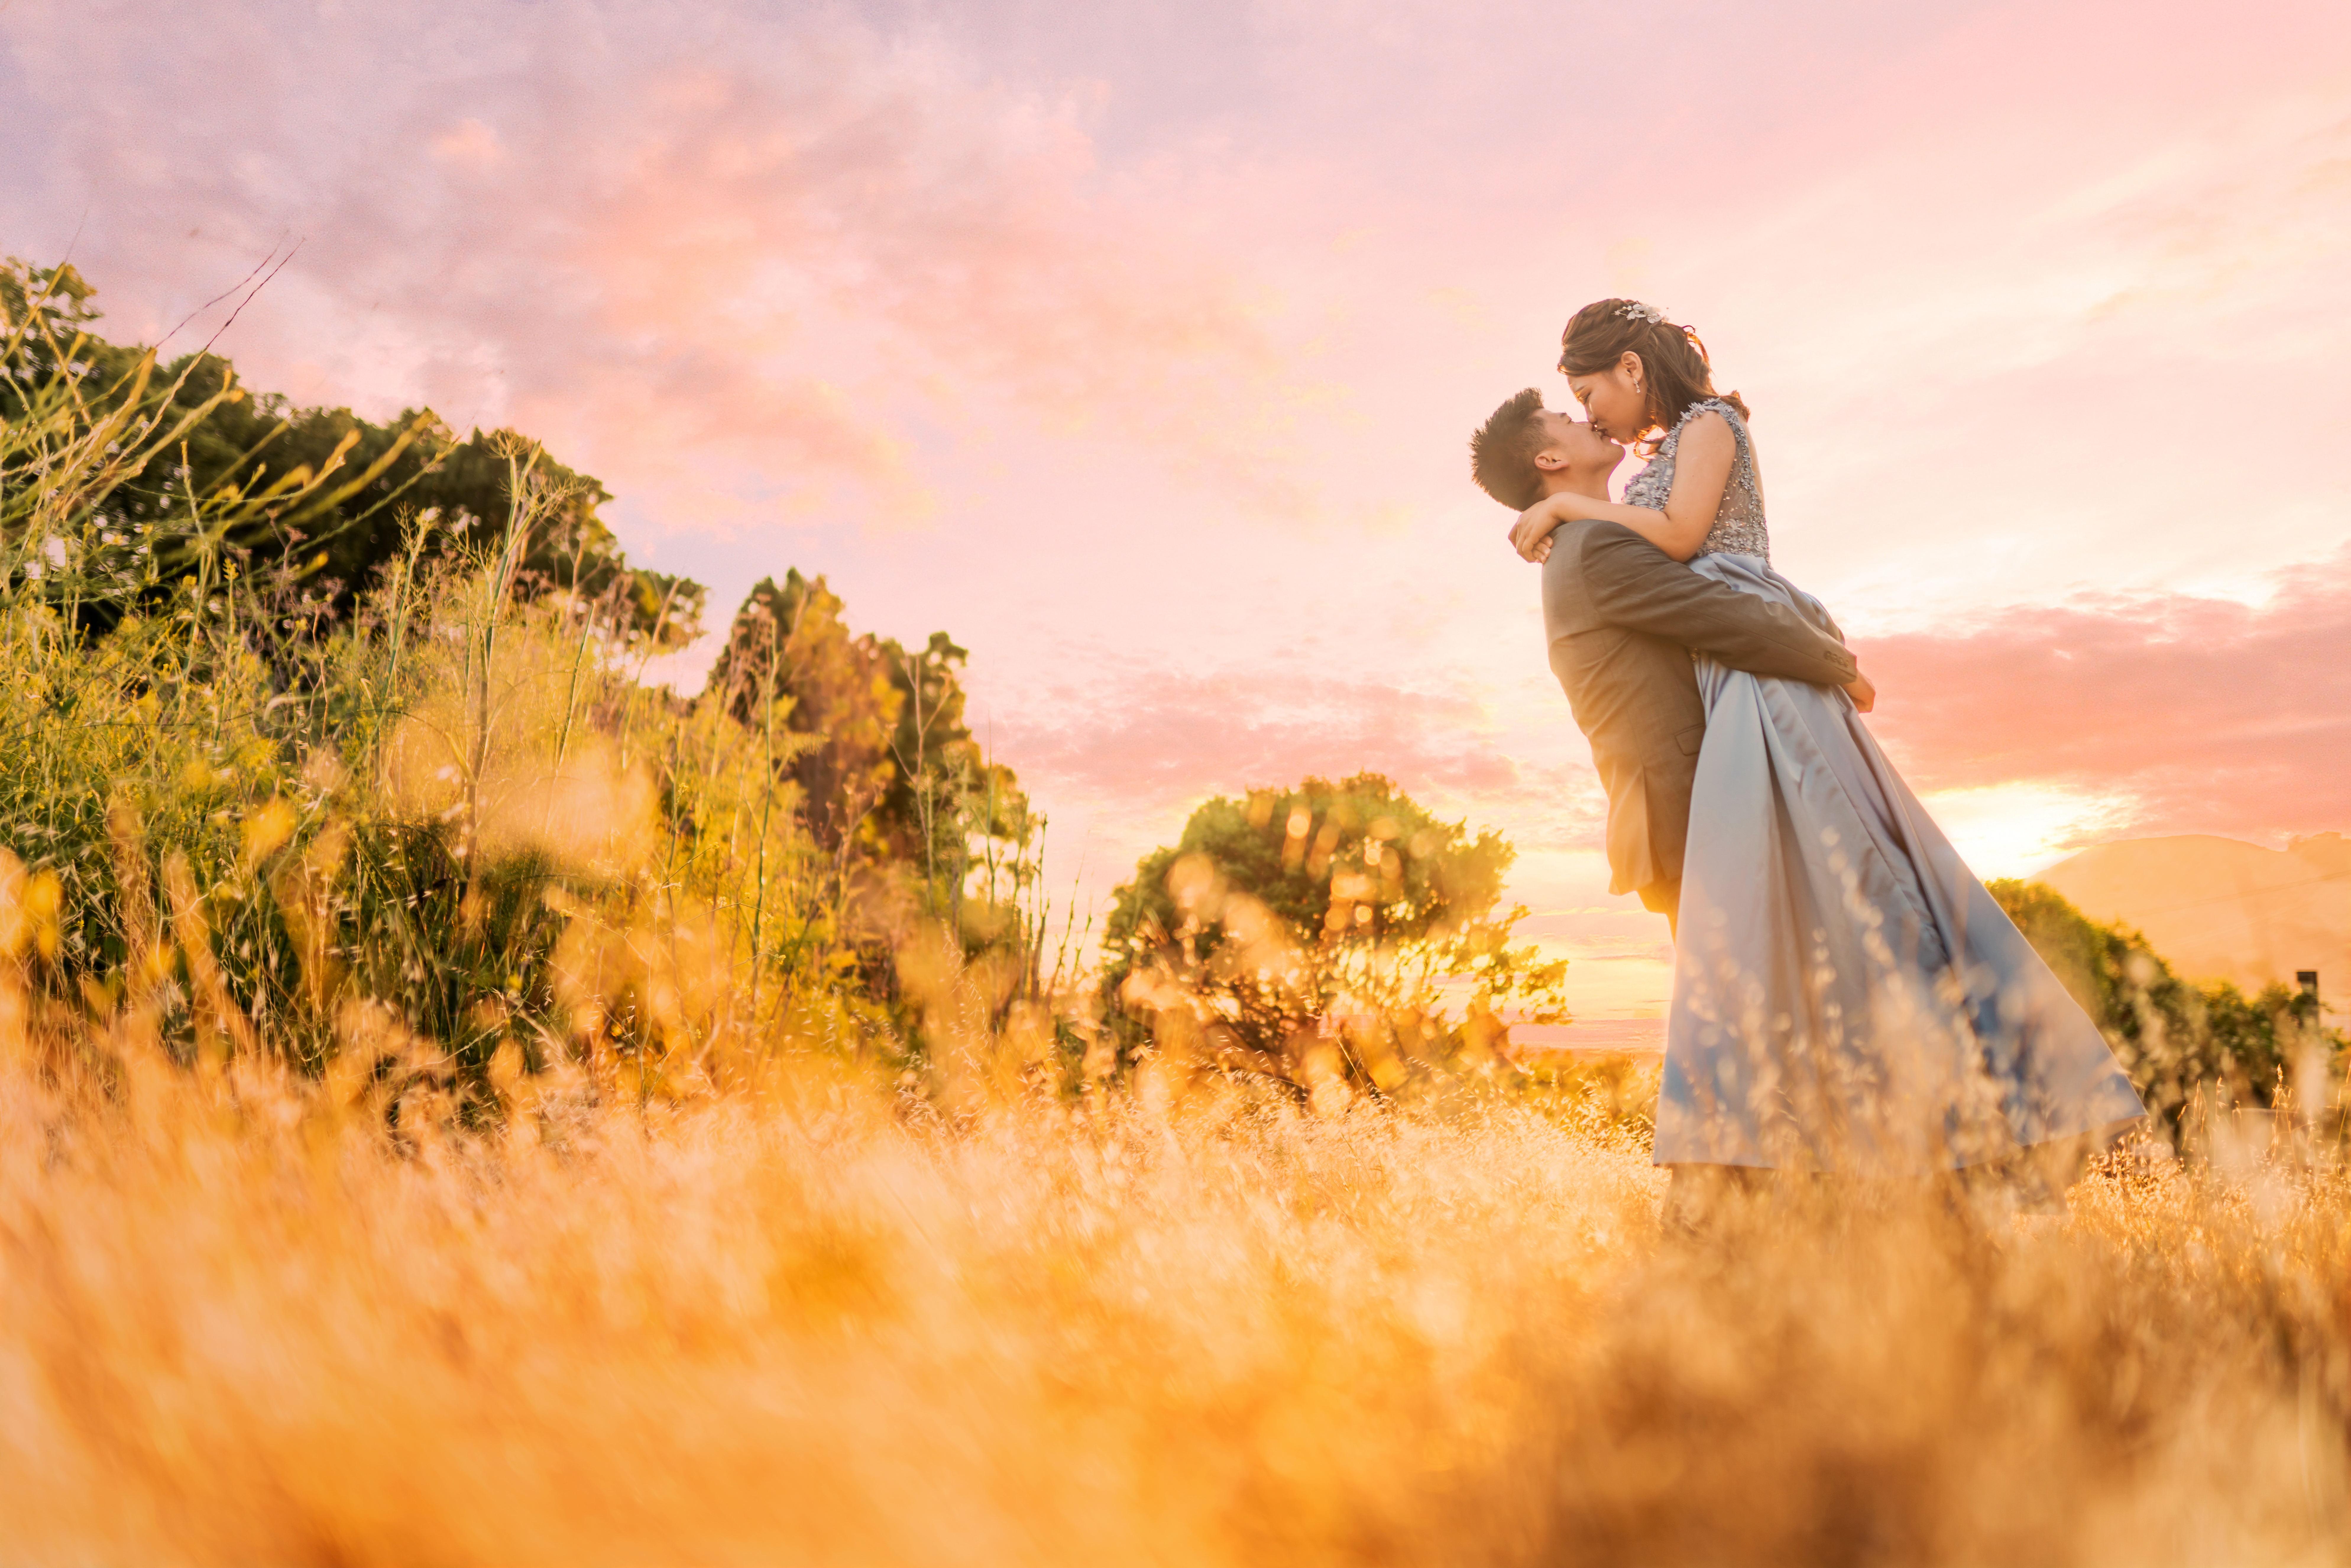 San Francisco Wedding Photography and Planning